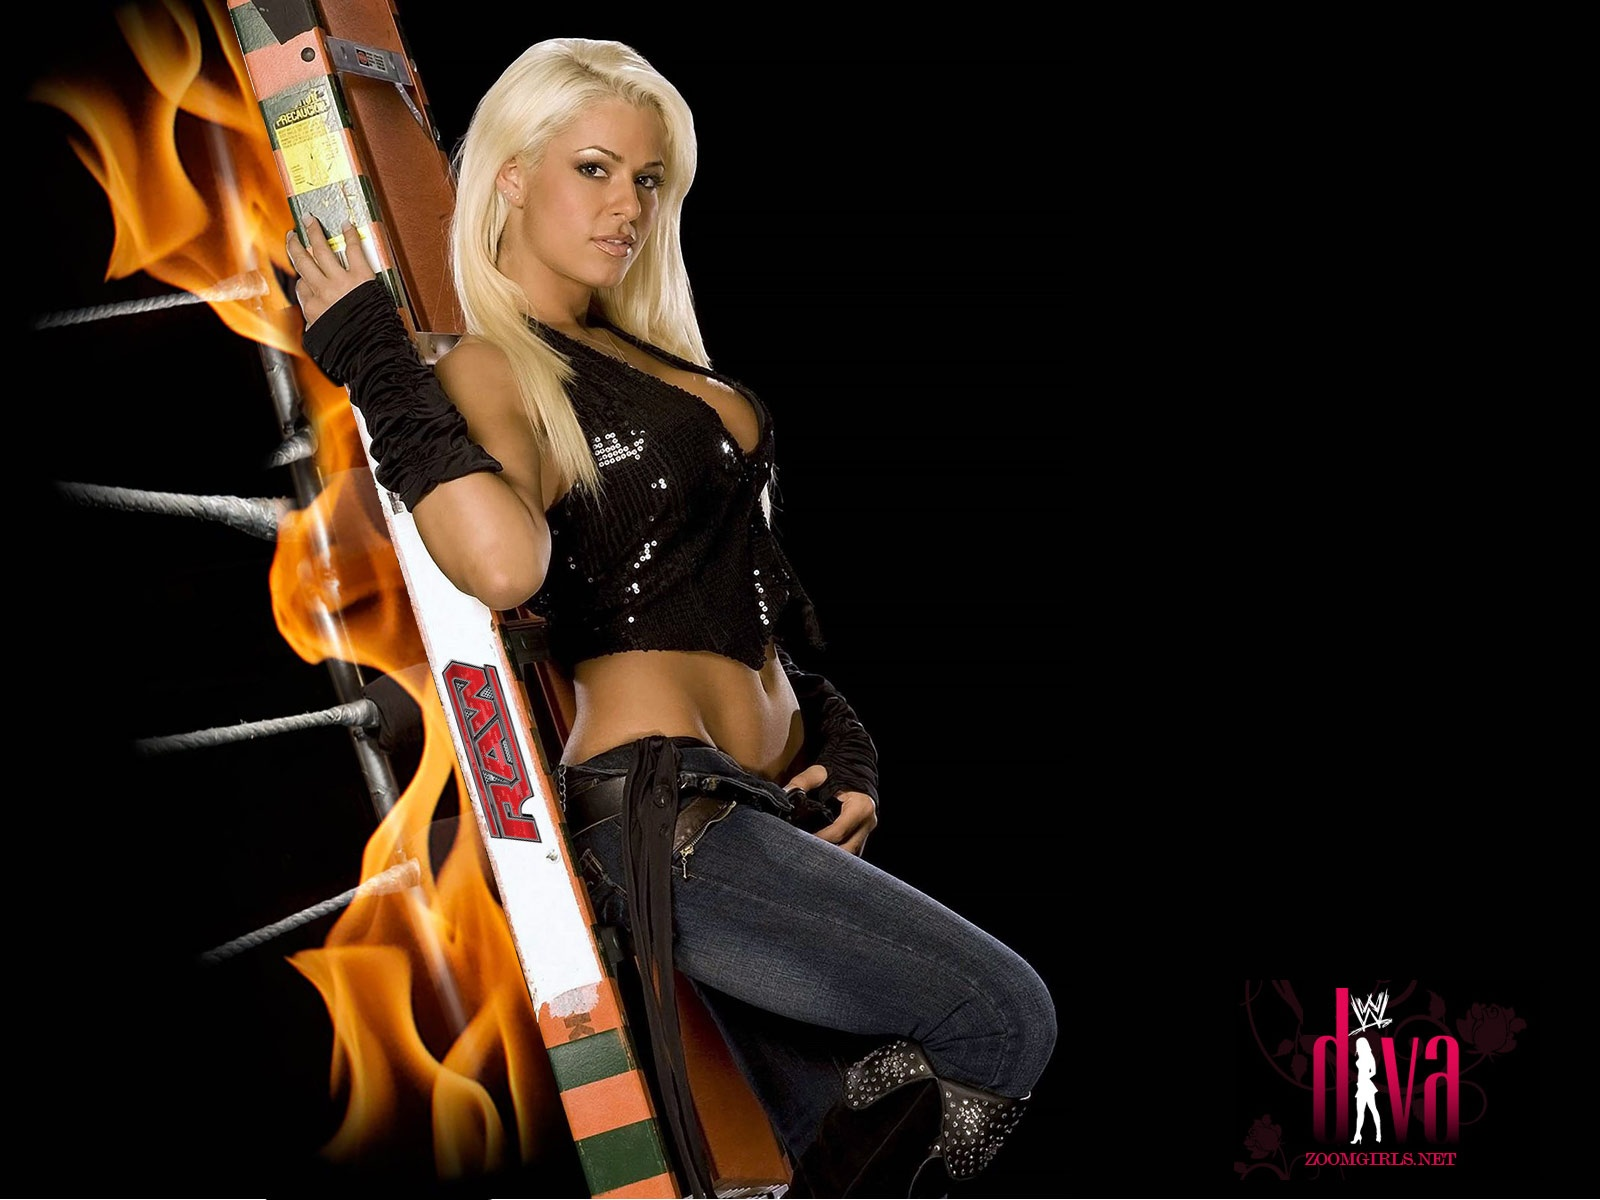 selected resolution 1600x1200 px size download close maryse